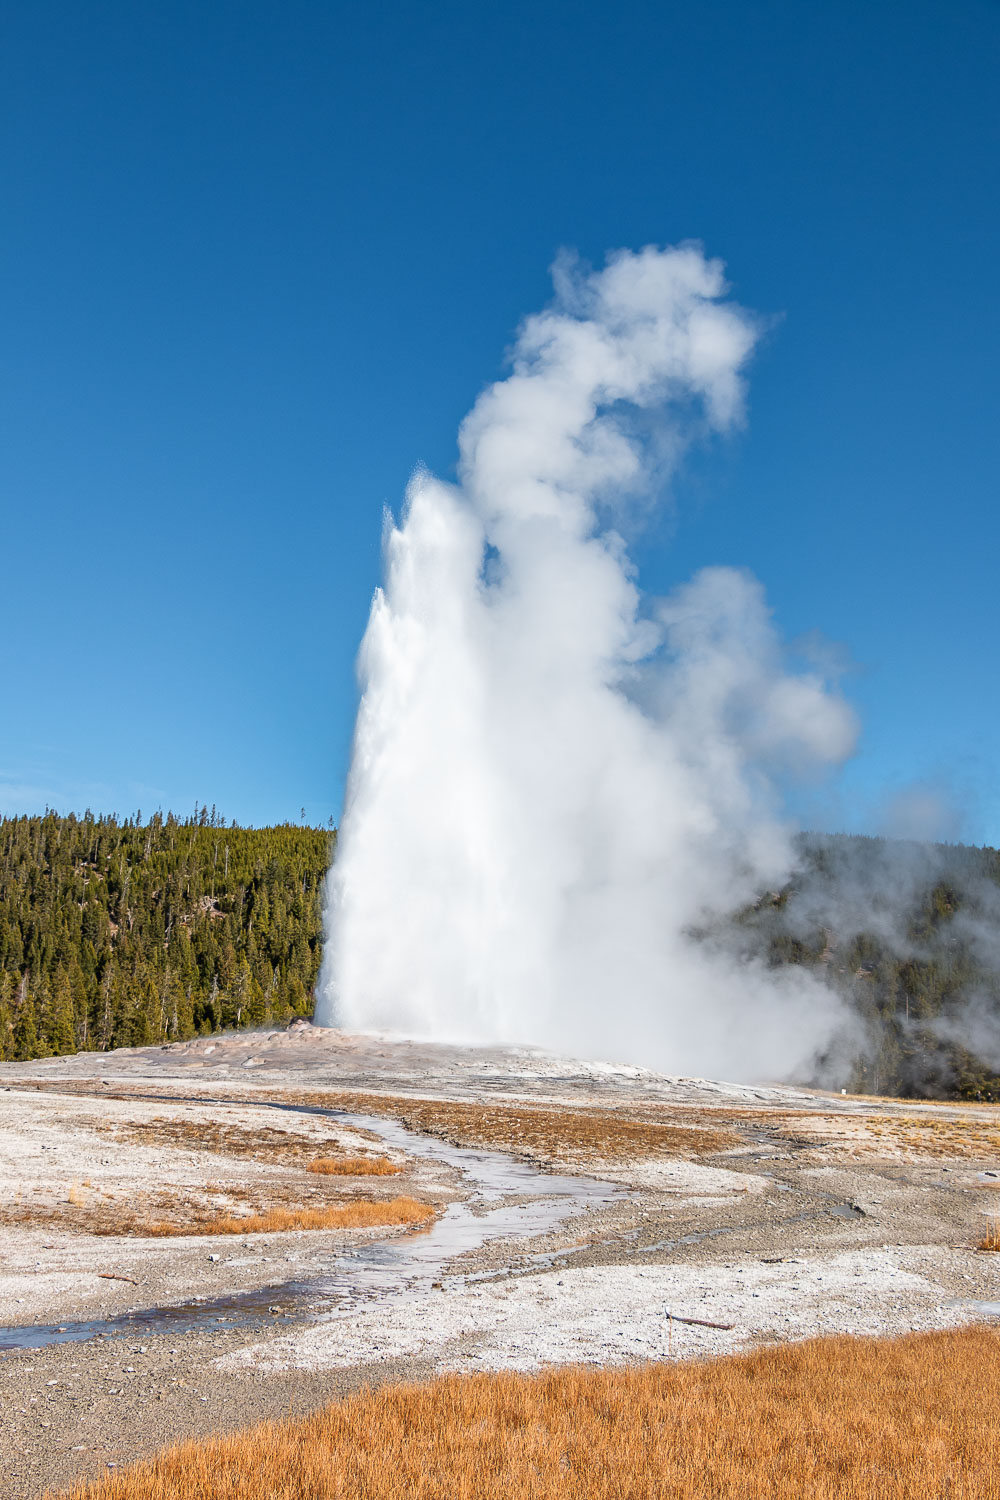 First visit to Yellowstone - Roads and Destinations. - roadsanddestinations.com